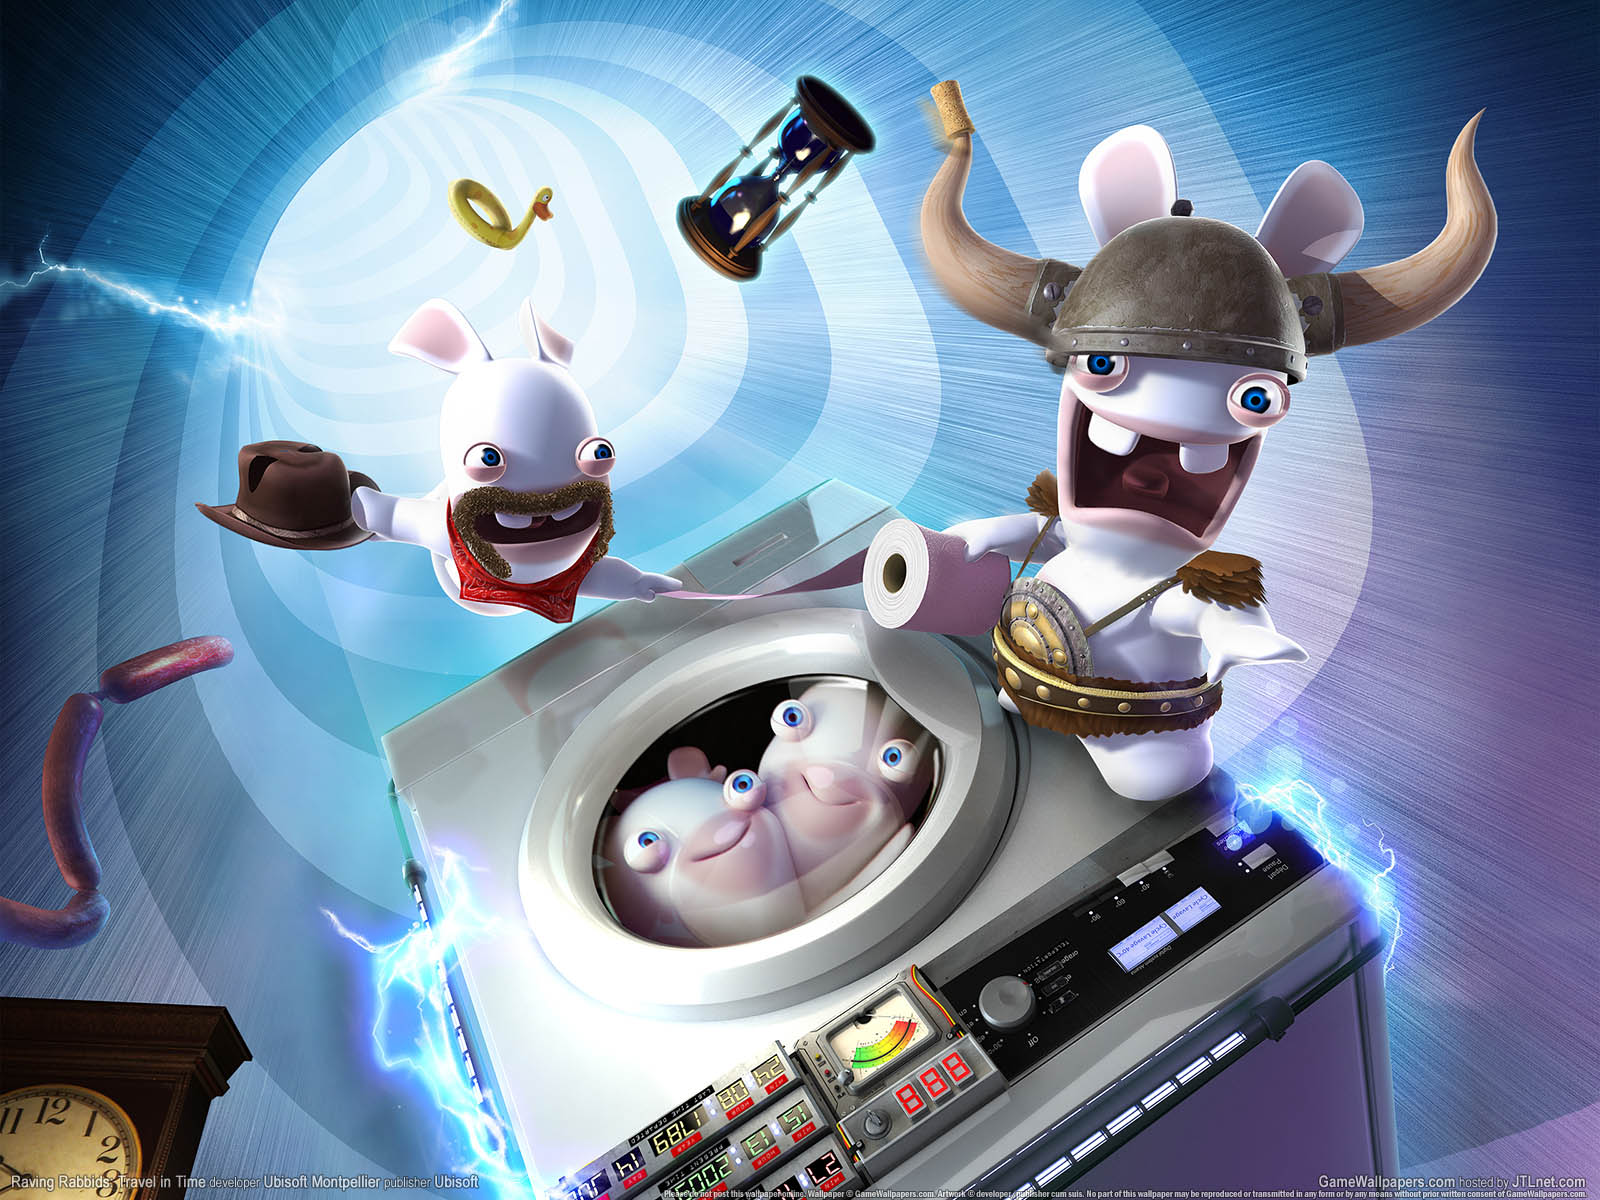 Raving Rabbids: Travel in Timeνmmer=02 achtergrond  1600x1200